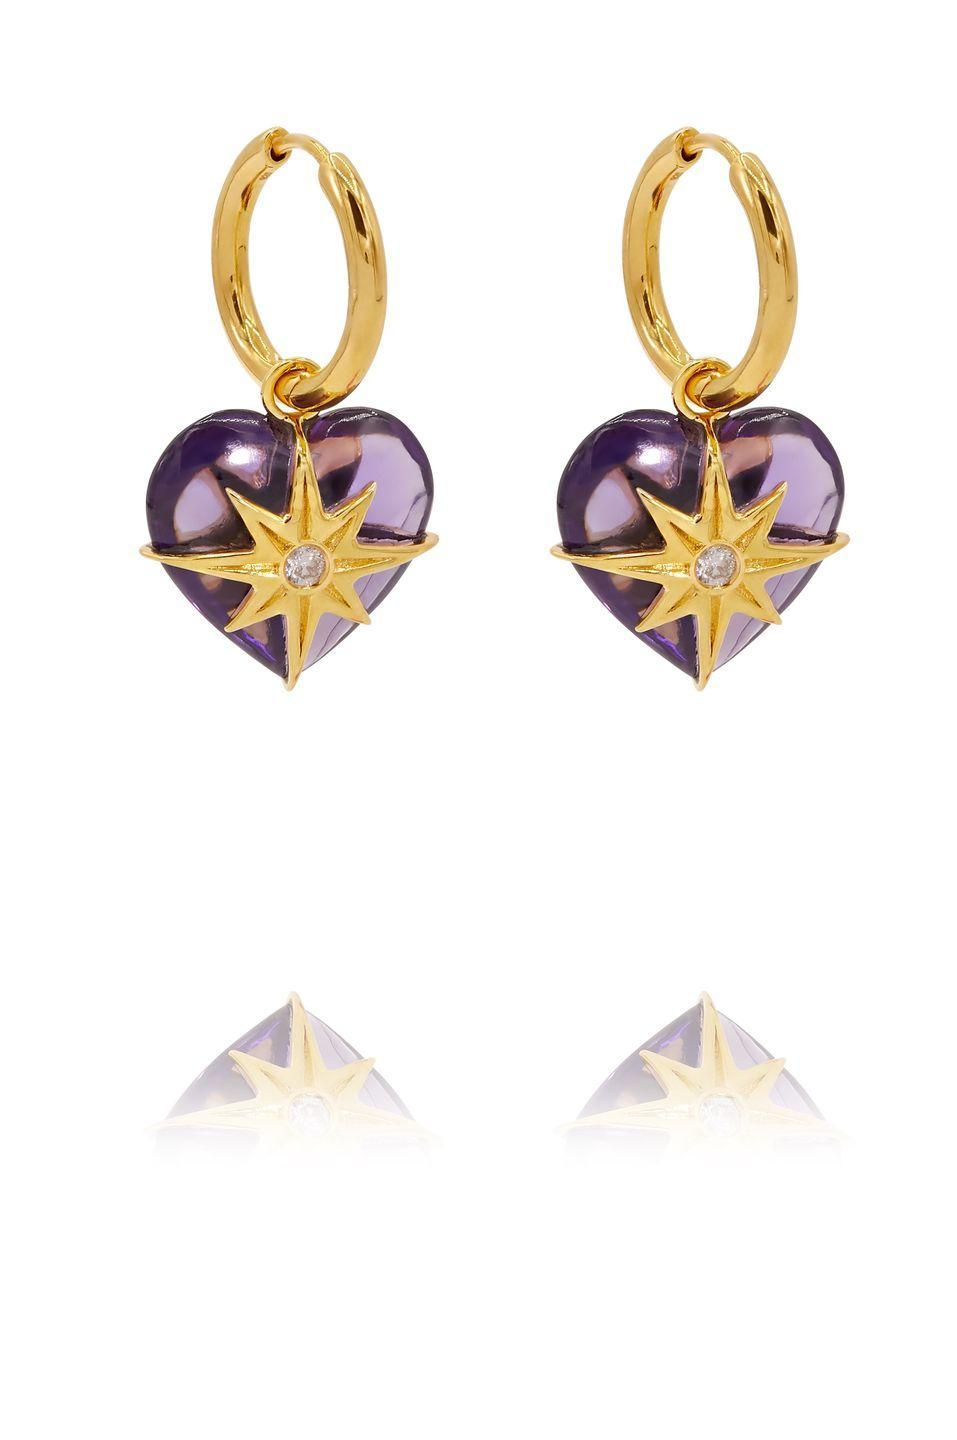 """<p><a class=""""link rapid-noclick-resp"""" href=""""https://theodorawarre.co.uk/amethyst-amethyst-heart-earrings"""" rel=""""nofollow noopener"""" target=""""_blank"""" data-ylk=""""slk:SHOP NOW"""">SHOP NOW</a></p><p>If pink isn't your thing, perhaps a pair of amethyst hearts inlaid with golden stars will strike the right note instead. </p><p>Gold-plated amethyst earrings, £360, <a href=""""https://theodorawarre.co.uk/"""" rel=""""nofollow noopener"""" target=""""_blank"""" data-ylk=""""slk:Theodora Warre"""" class=""""link rapid-noclick-resp"""">Theodora Warre</a>.</p>"""